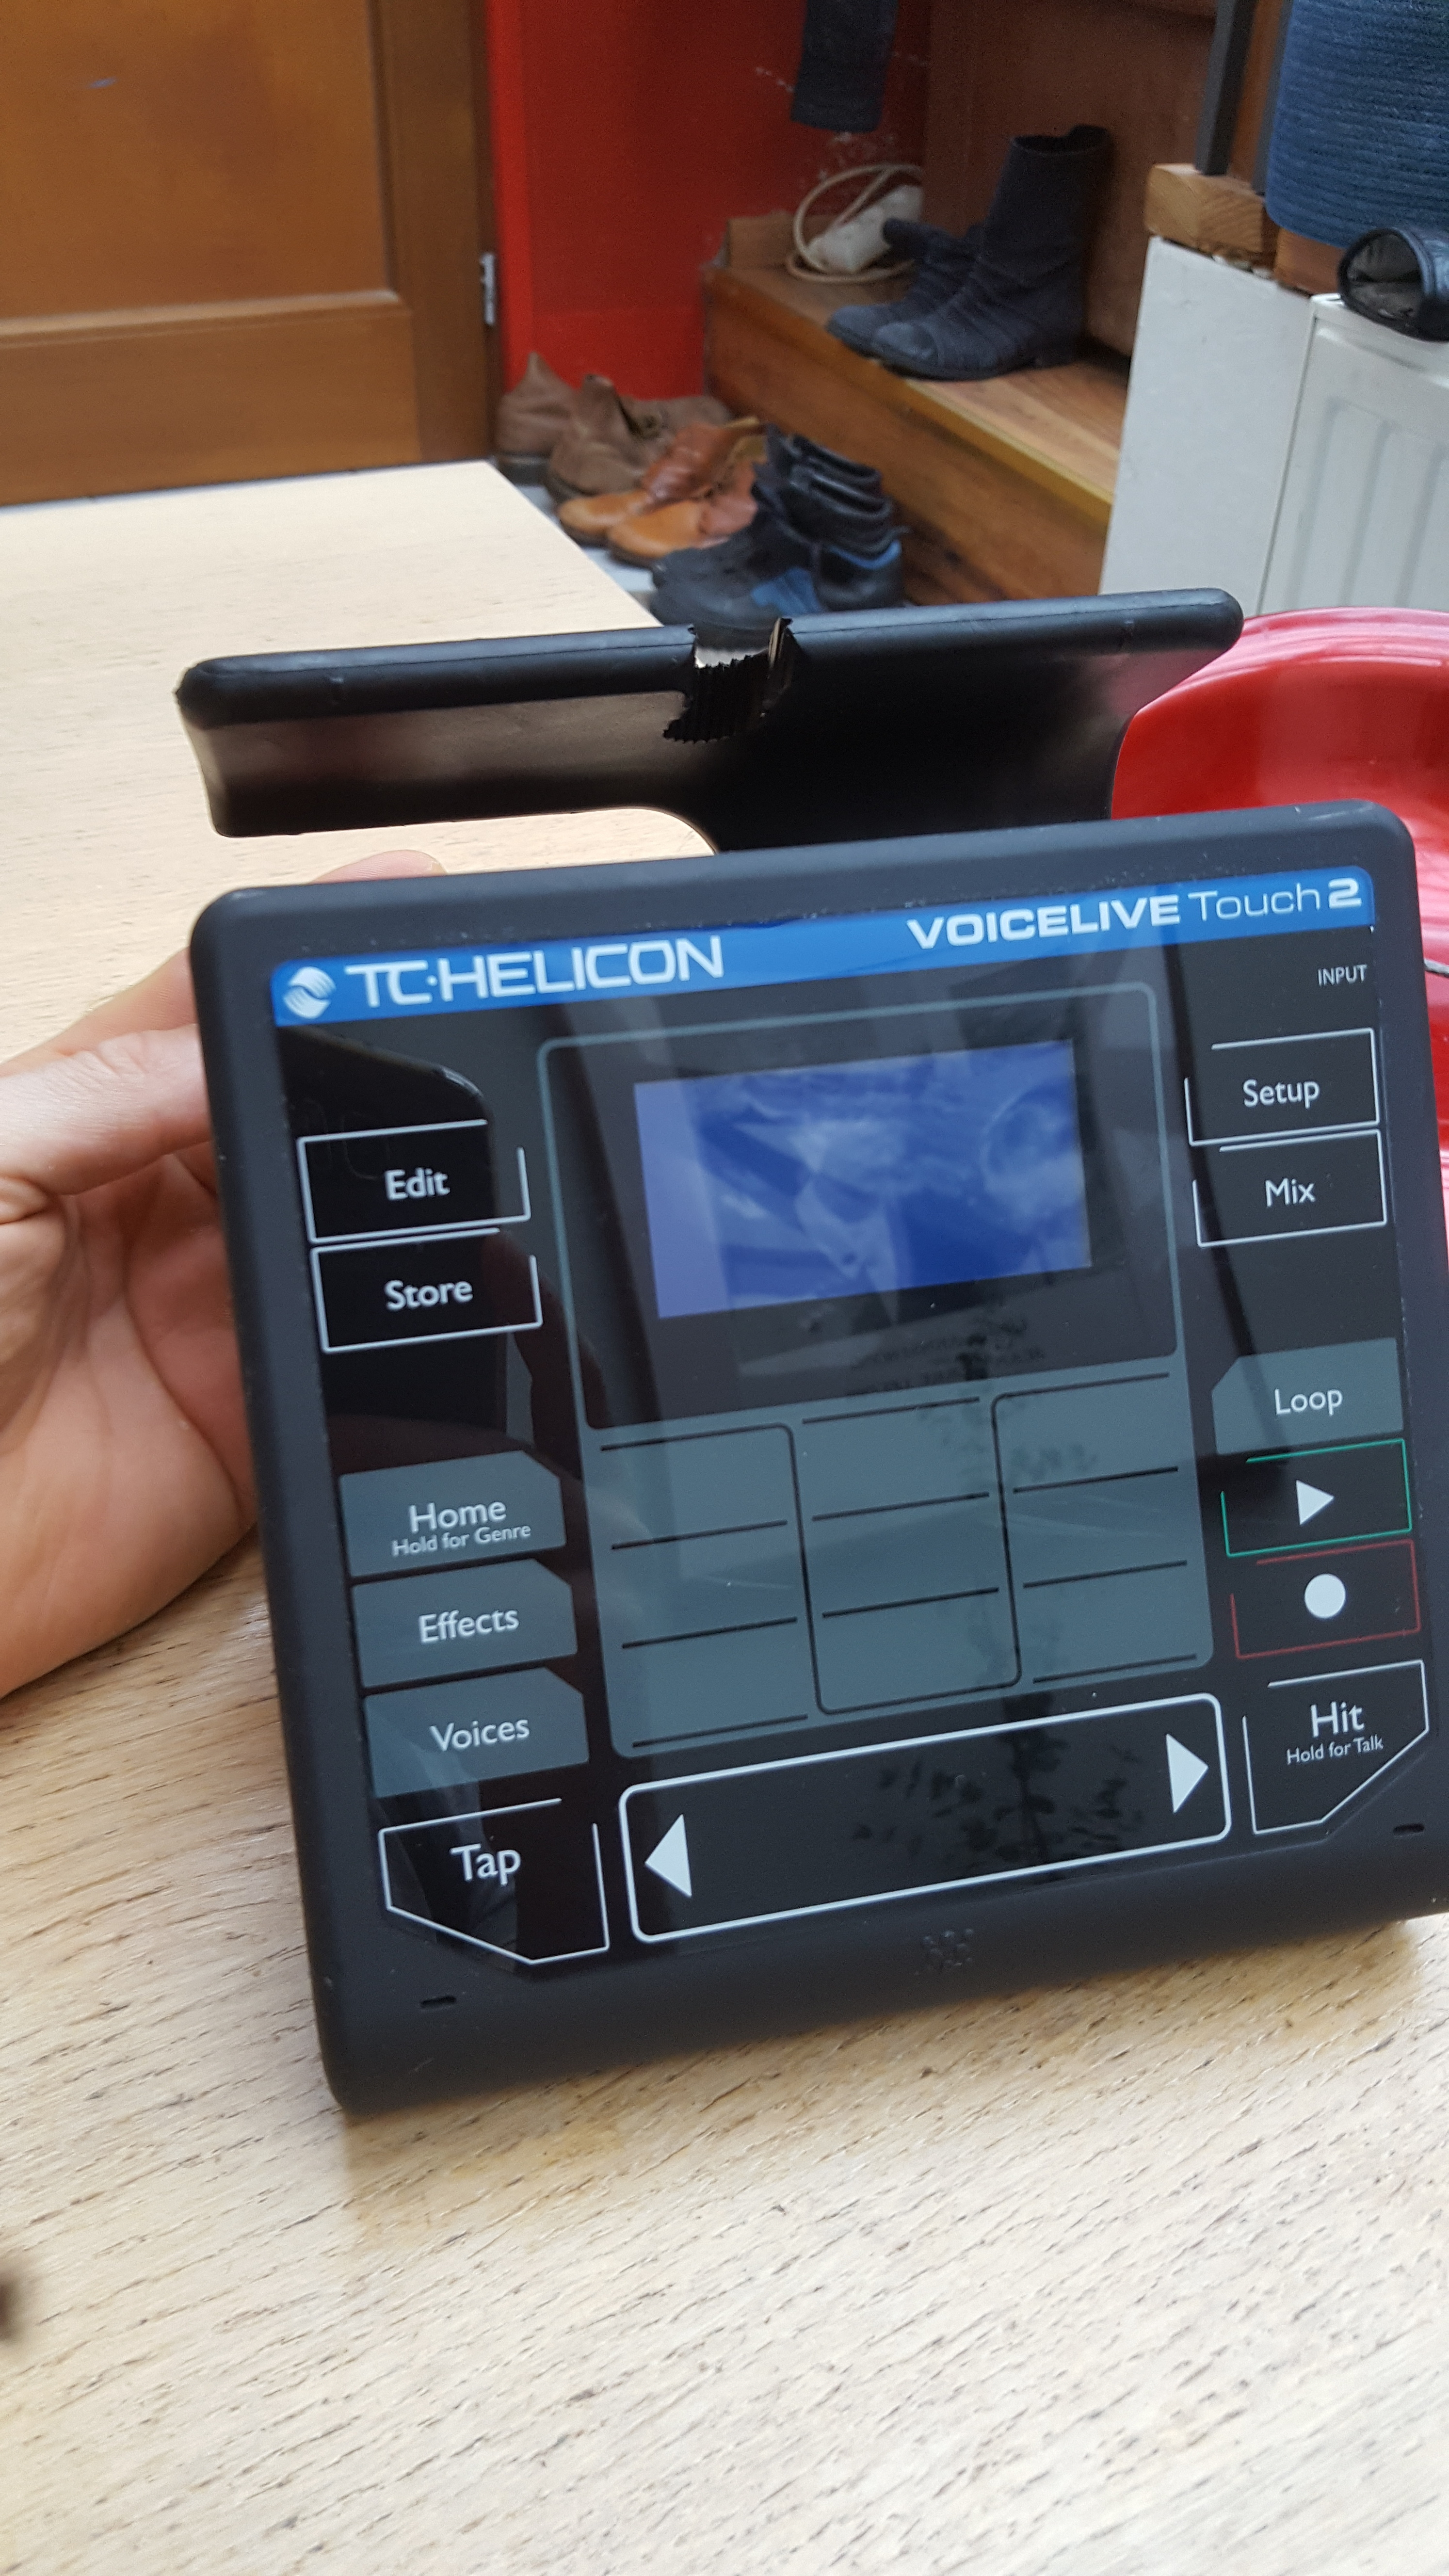 voicelive touch 2 tc helicon voicelive touch 2 audiofanzine. Black Bedroom Furniture Sets. Home Design Ideas